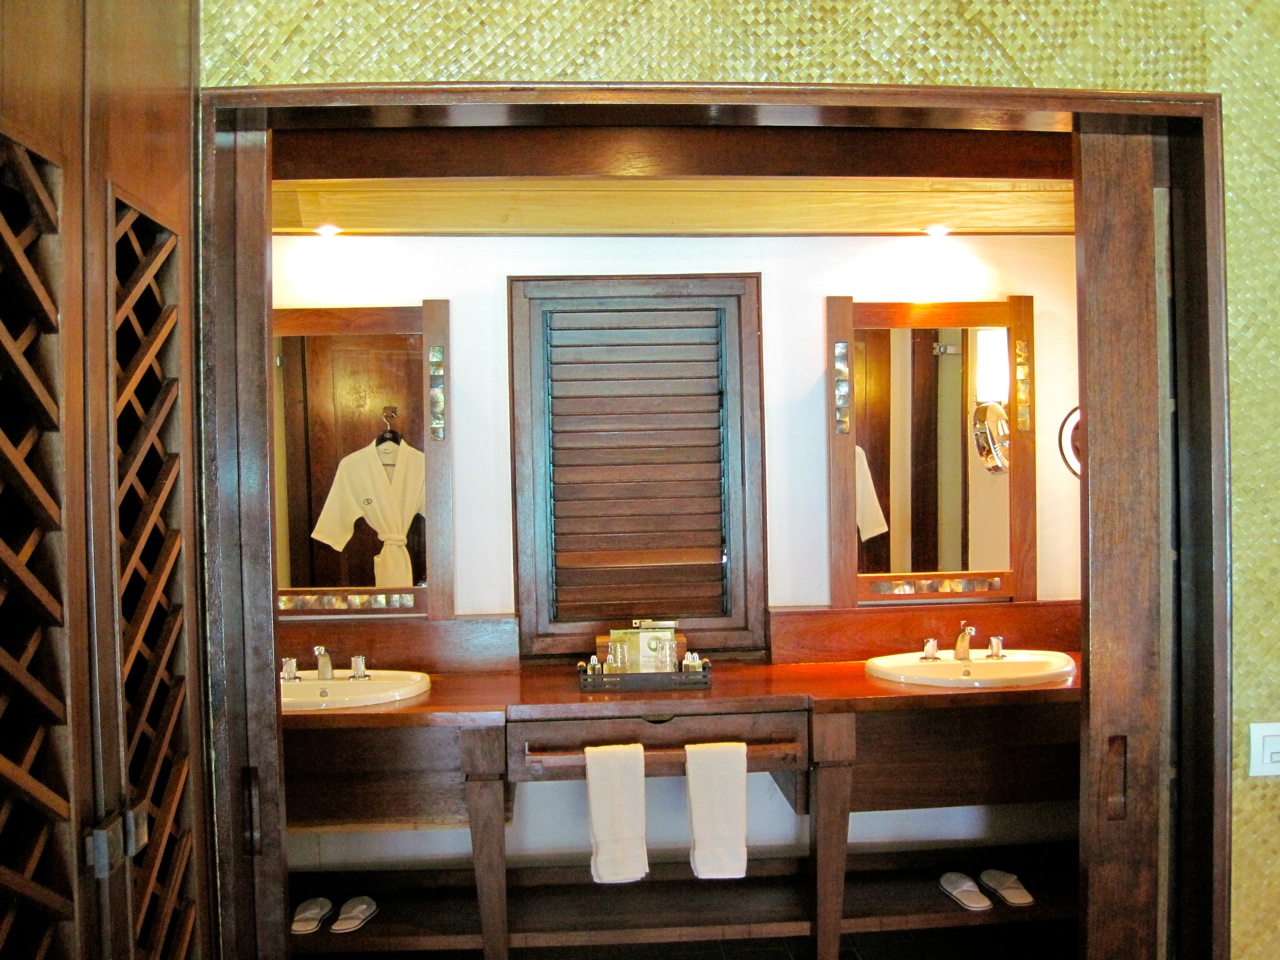 double sink at the bathroom. Overwater bungalow at the Sofitel Private Island Bora-Bora